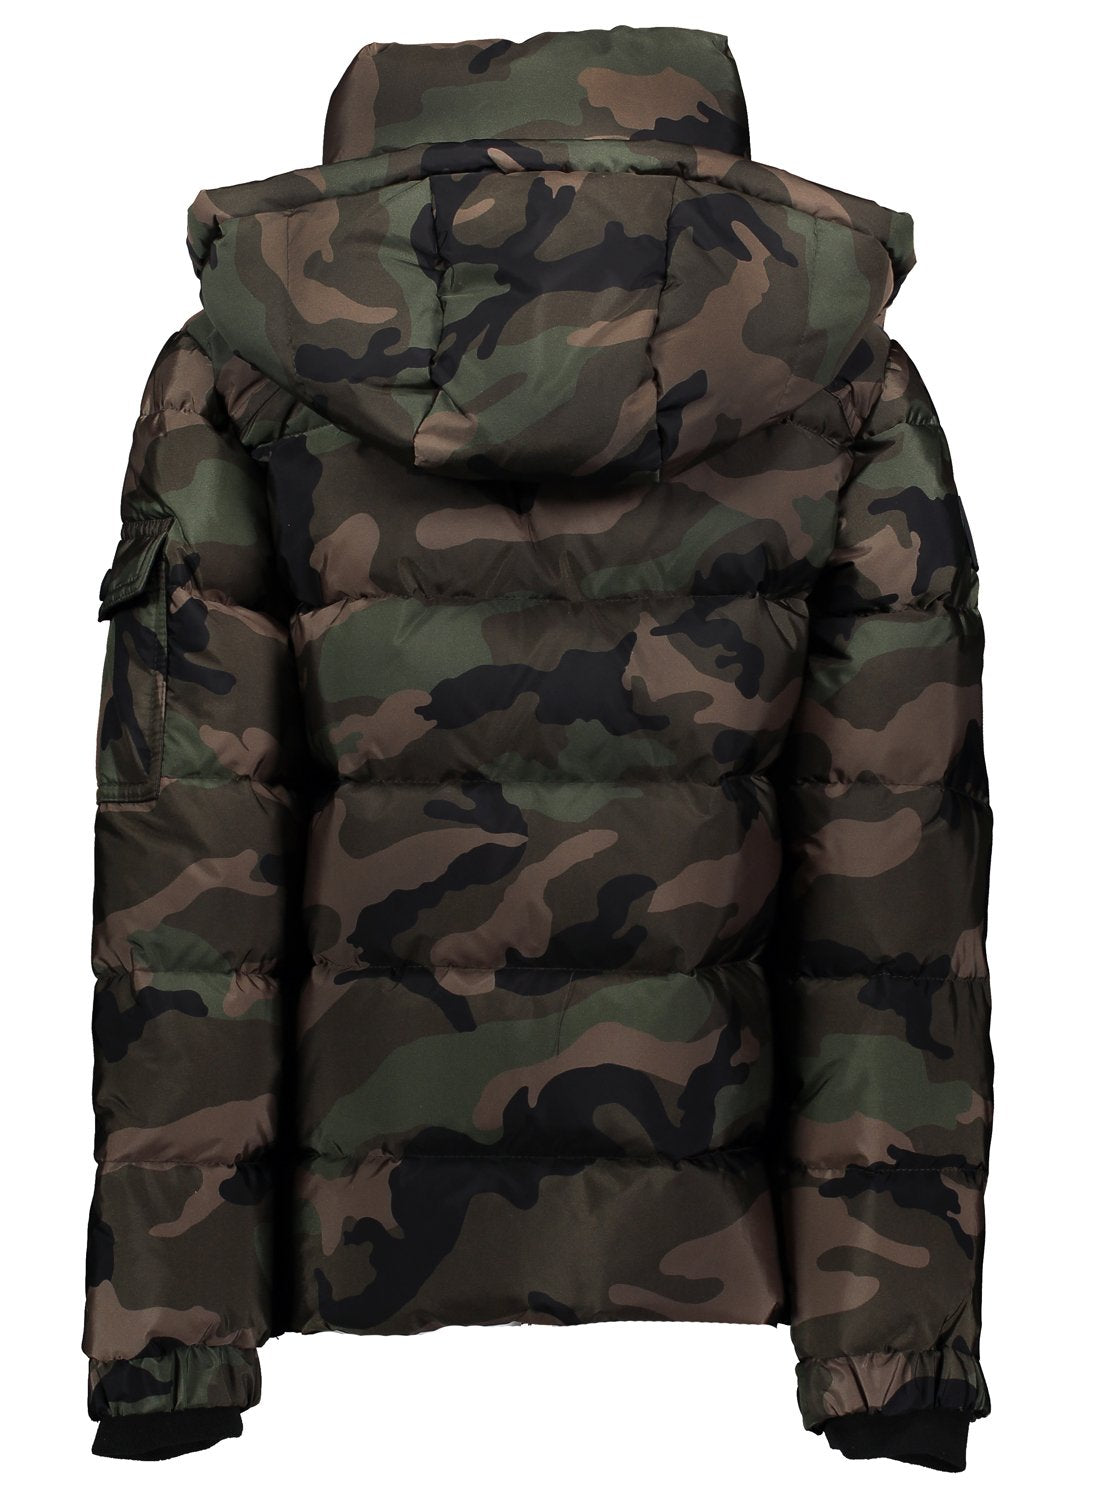 BOYS CAMO GLACIER BOYS CAMO GLACIER - SAM. New York Sam nyc jacket